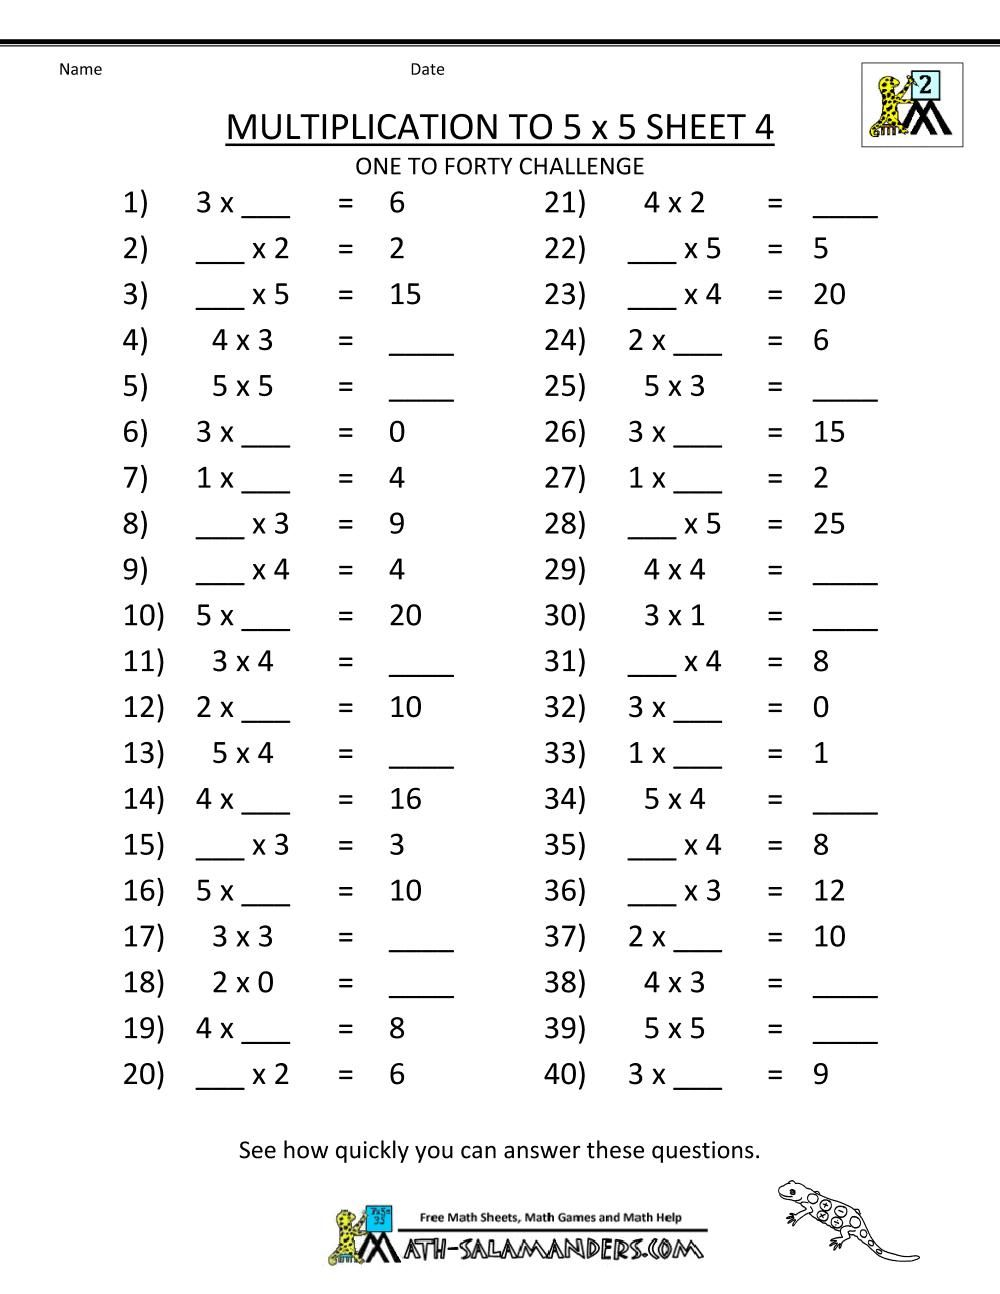 Multiplication Worksheets Grade 5 Word Problems Multiplication Facts Worksheets Math Fact Worksheets Math Multiplication Worksheets